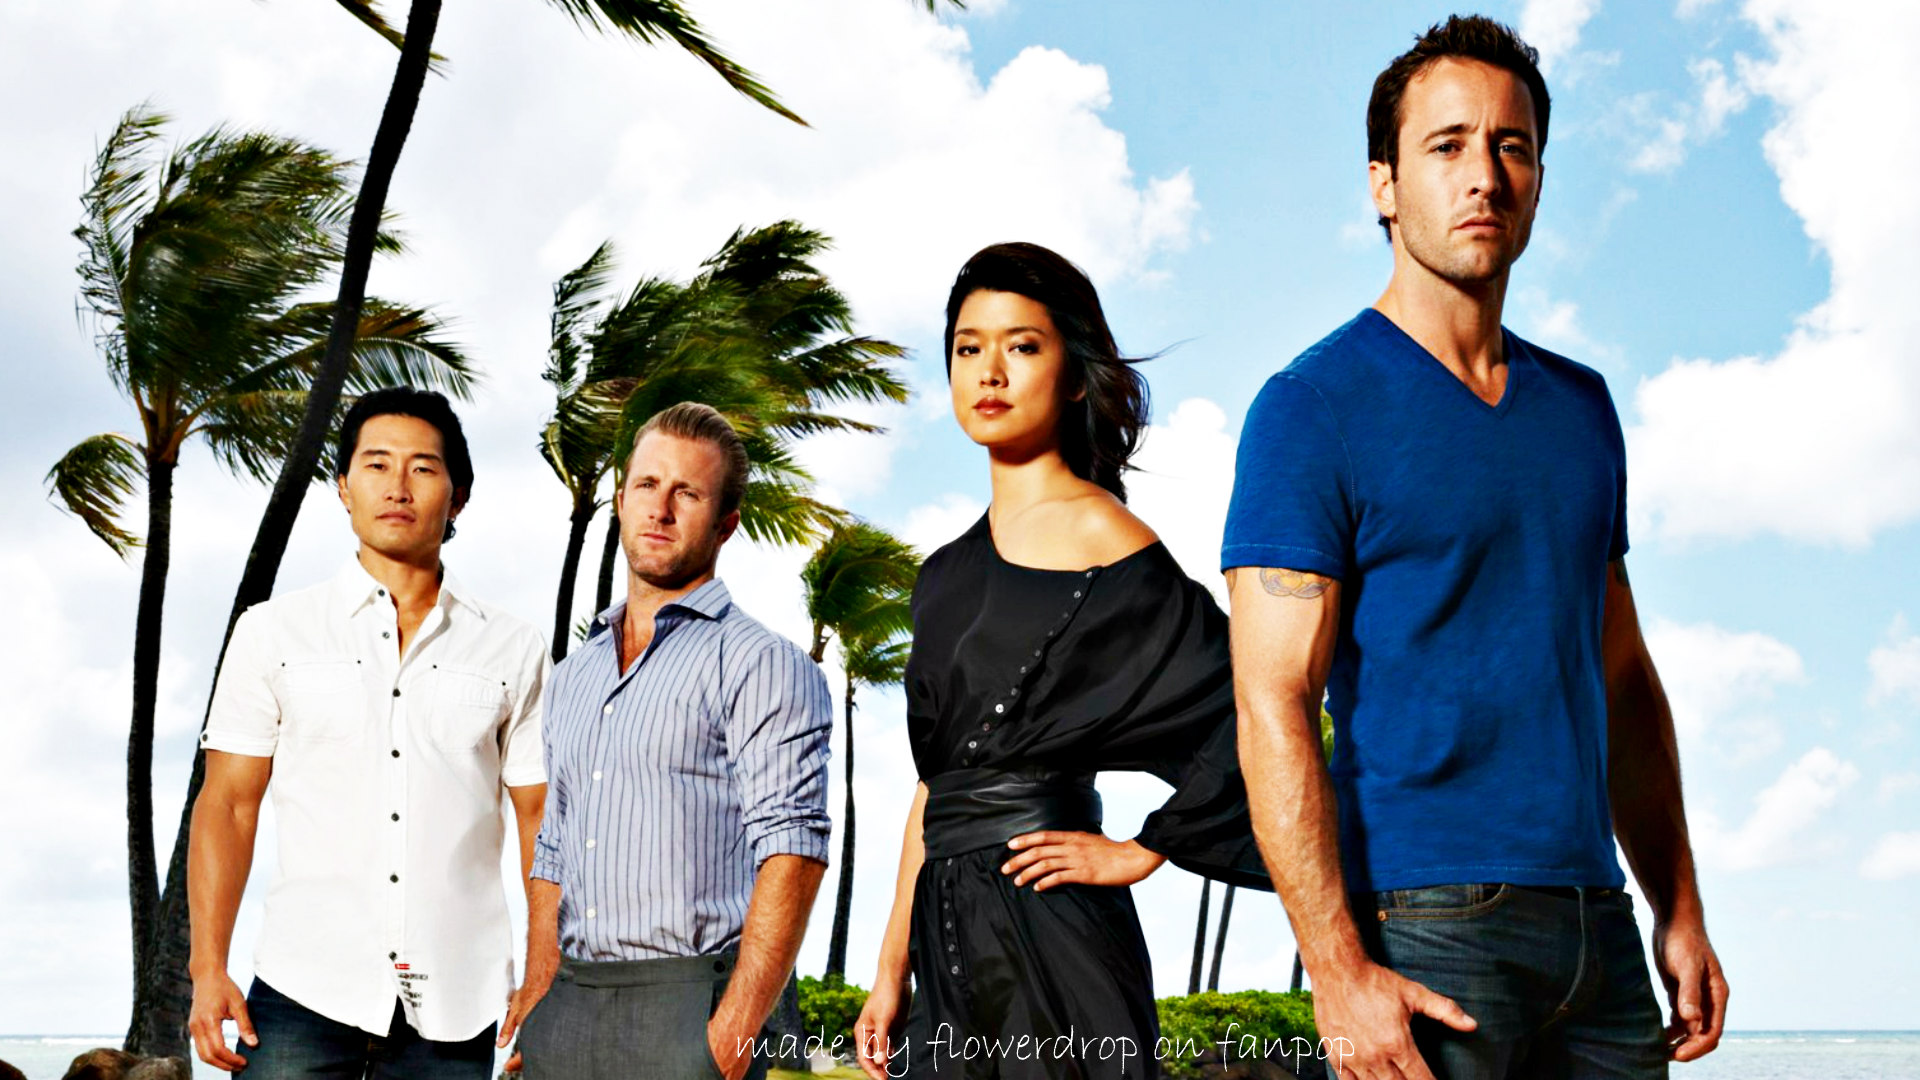 Hawaii Five O Wallpaper Hawaii Five 0 2010 Wallpaper